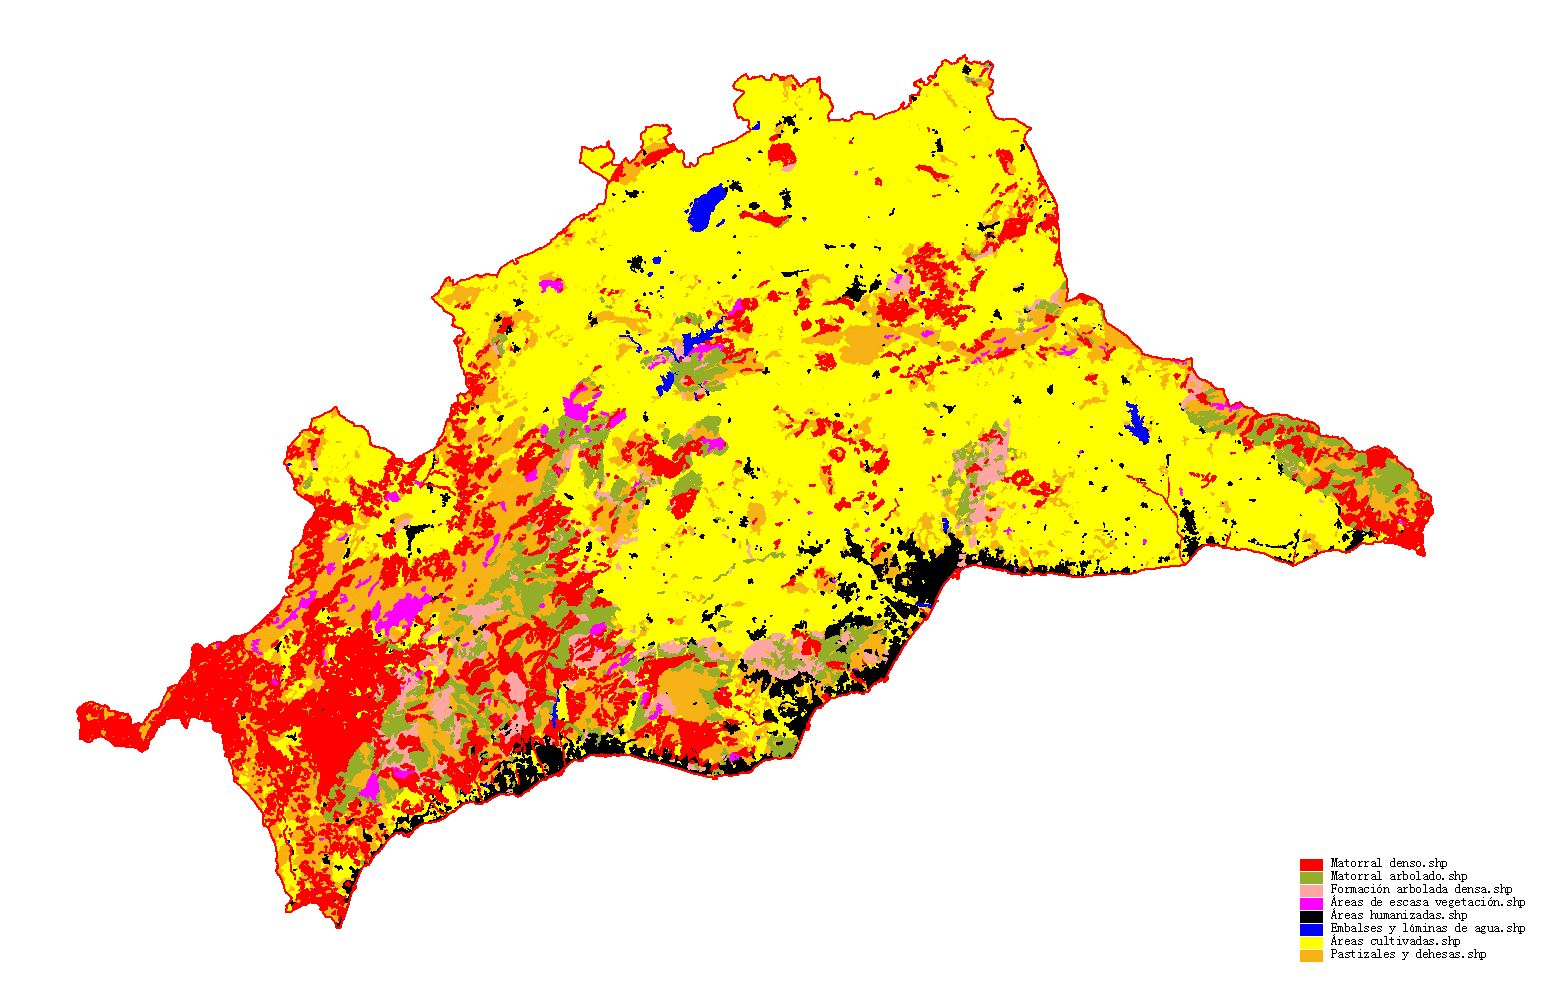 Vegetation of the province of Málaga